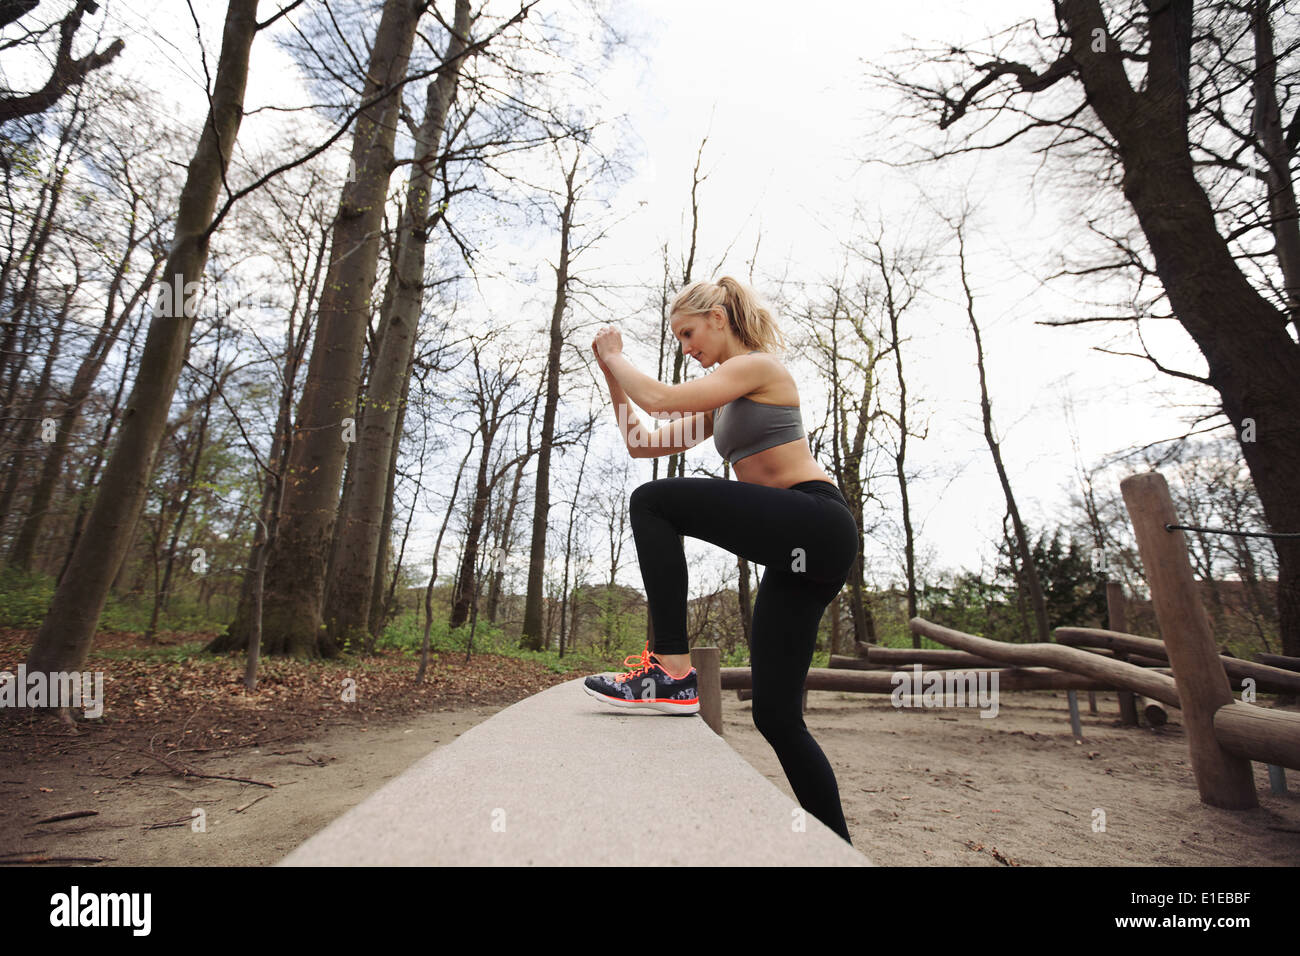 Fitness woman doing stepping up exercise in forest. Caucasian female model working out in nature. - Stock Image